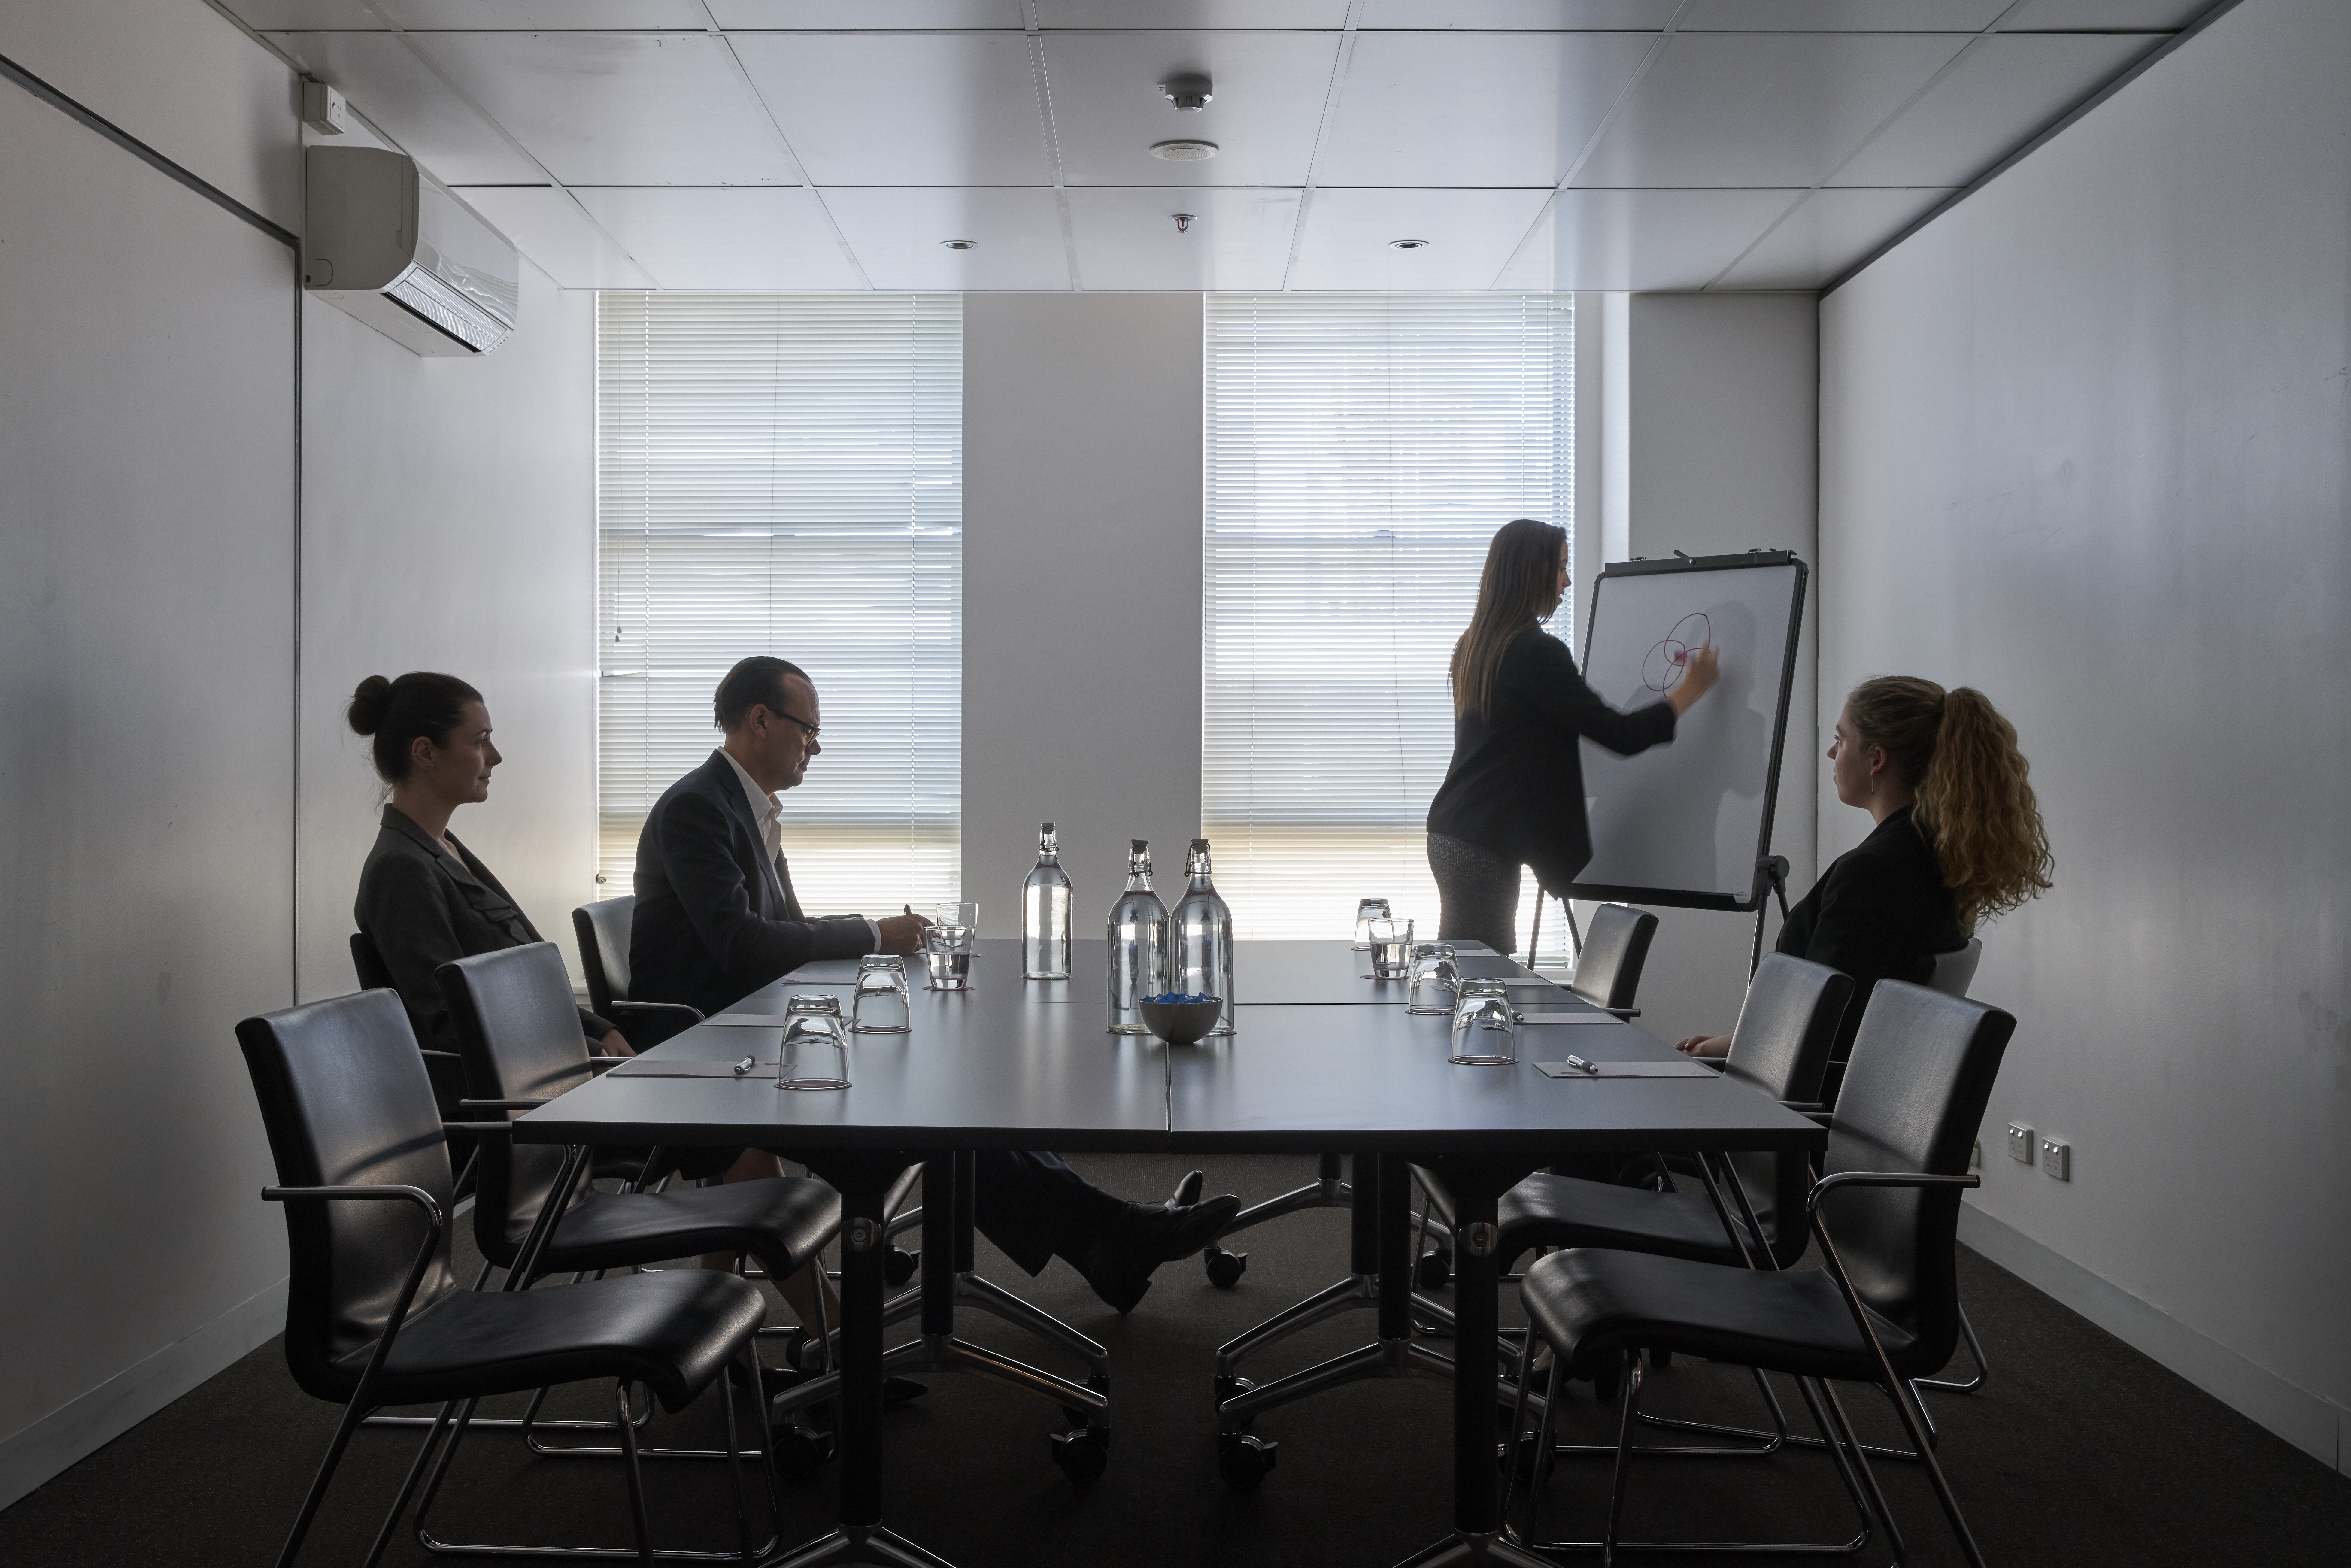 With virtual meetings now the new norm, are face to face meetings still important?